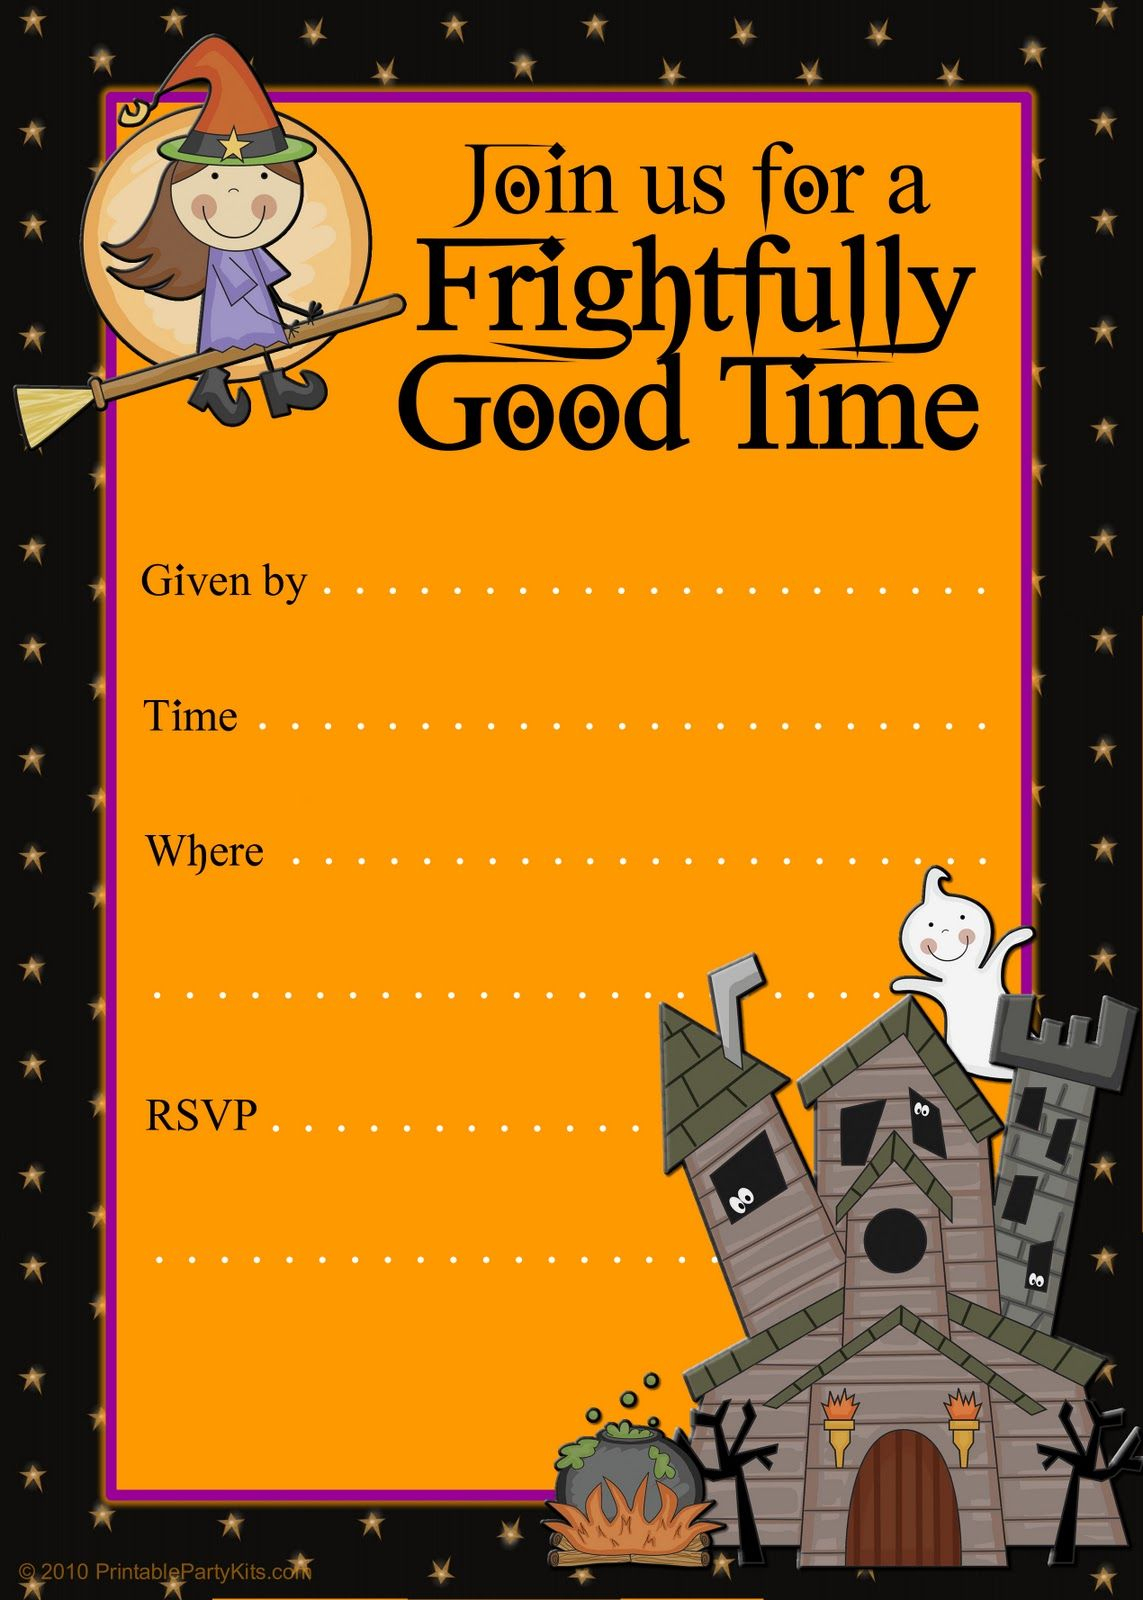 Free Halloween Flyer Invitations Printable | Food | Pinterest - Free Printable Halloween Invitations For Adults